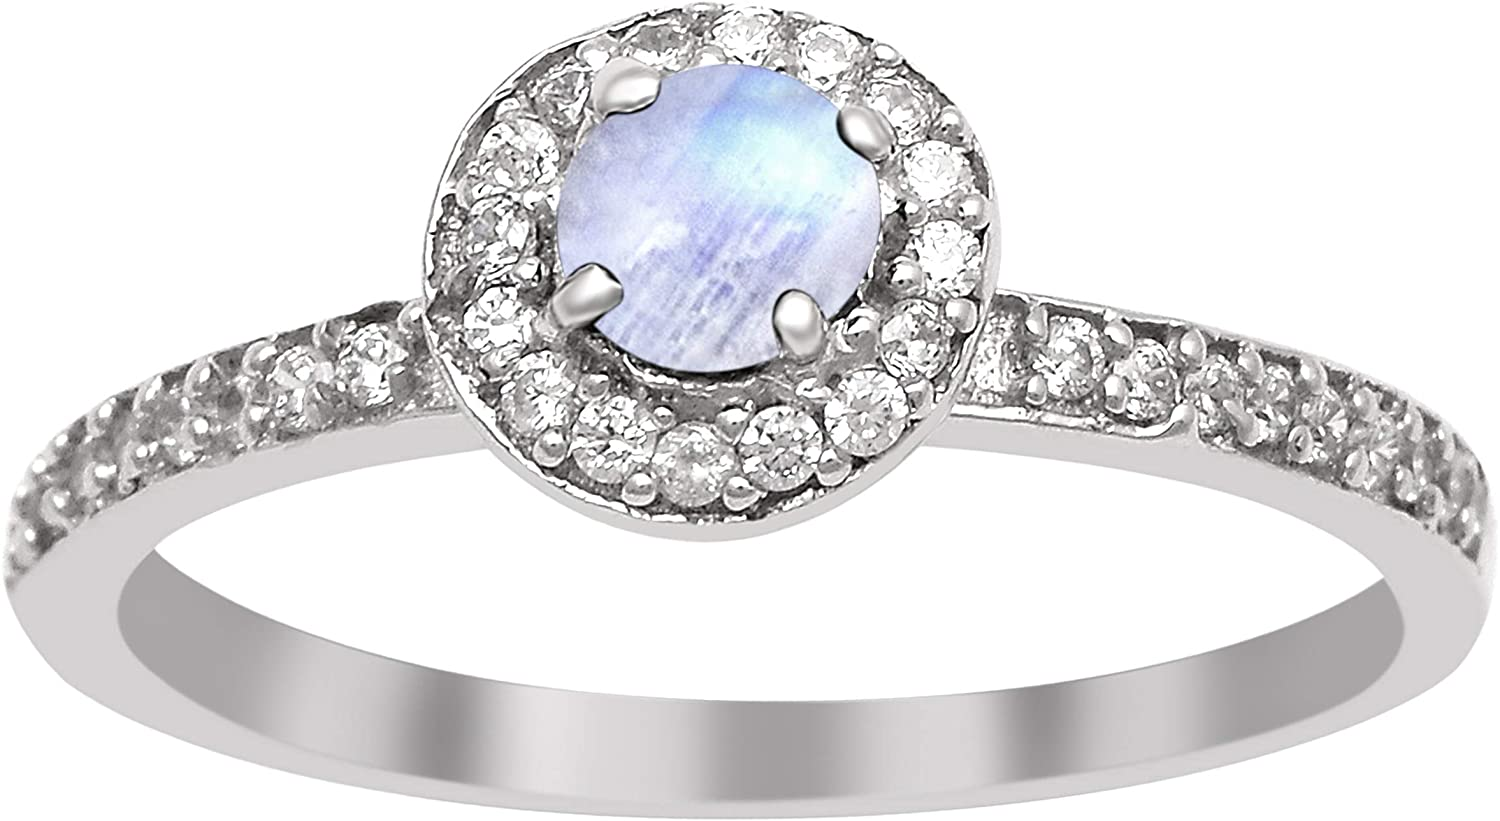 Shine Jewel 925 Sterling Silver 0.30 Ctw Moonstone Solitaire Accents Women Wedding Ring